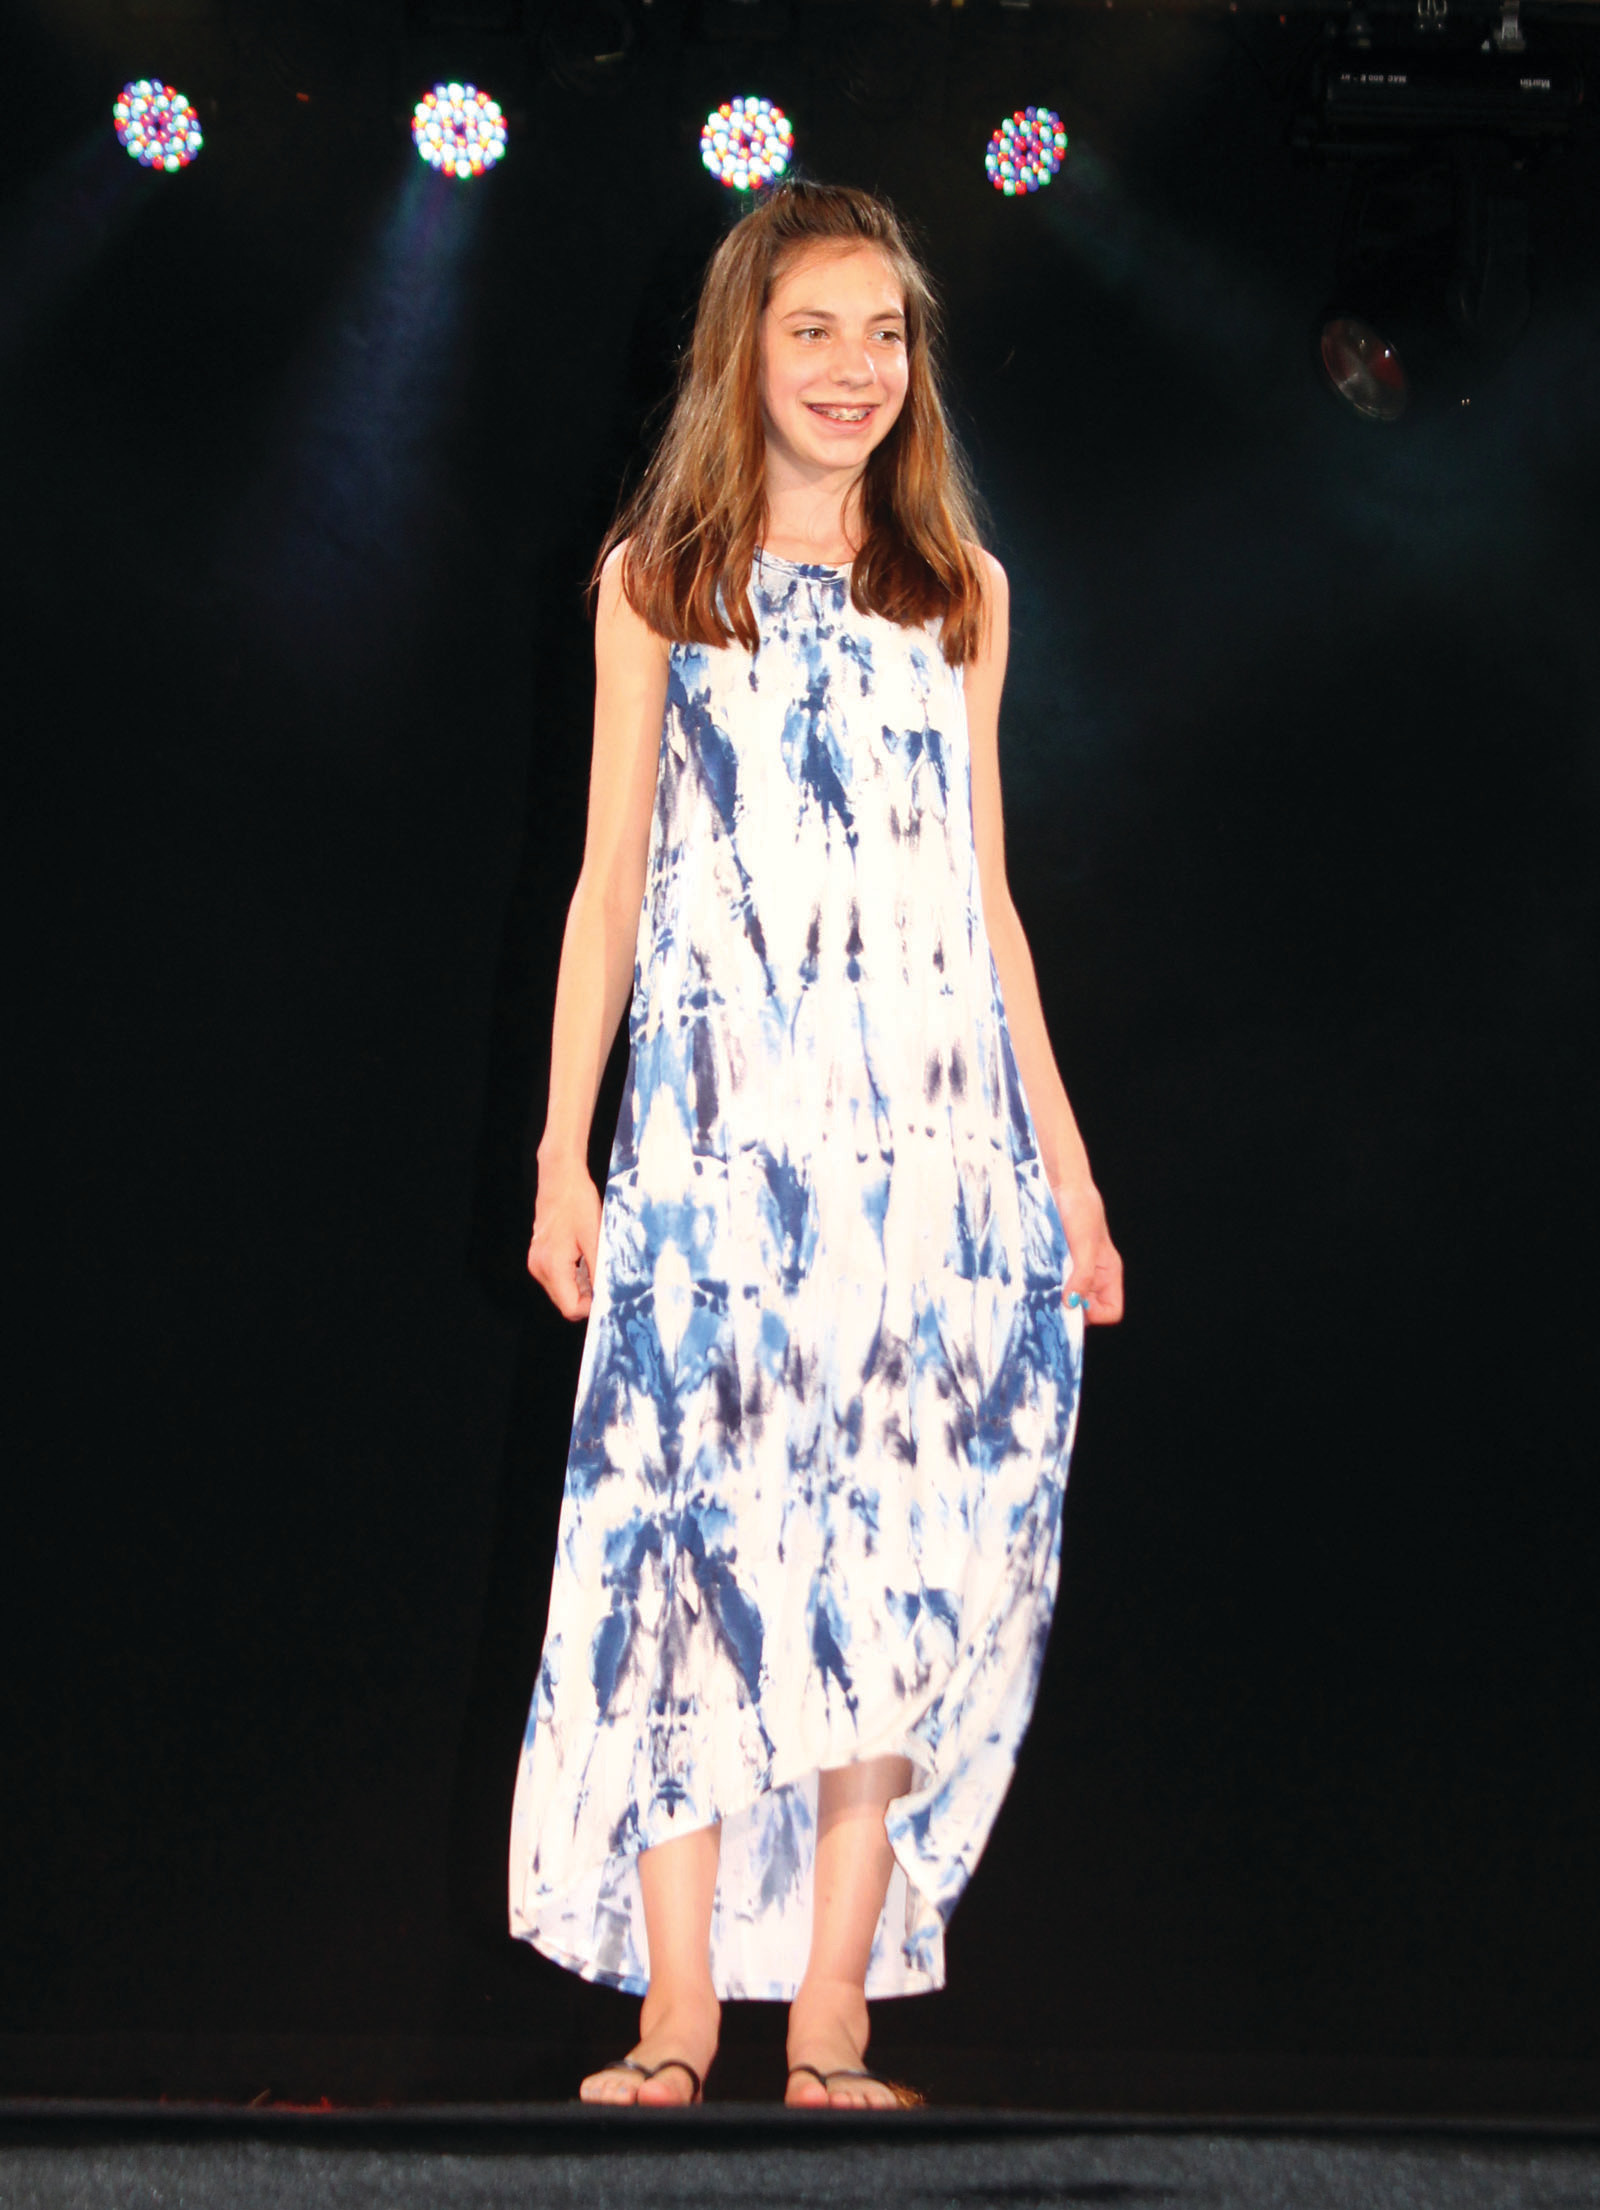 A NEW DRESS FOR SUMMERTIME: Amber Prior walked the runway in a dress she worked on throughout the school year.